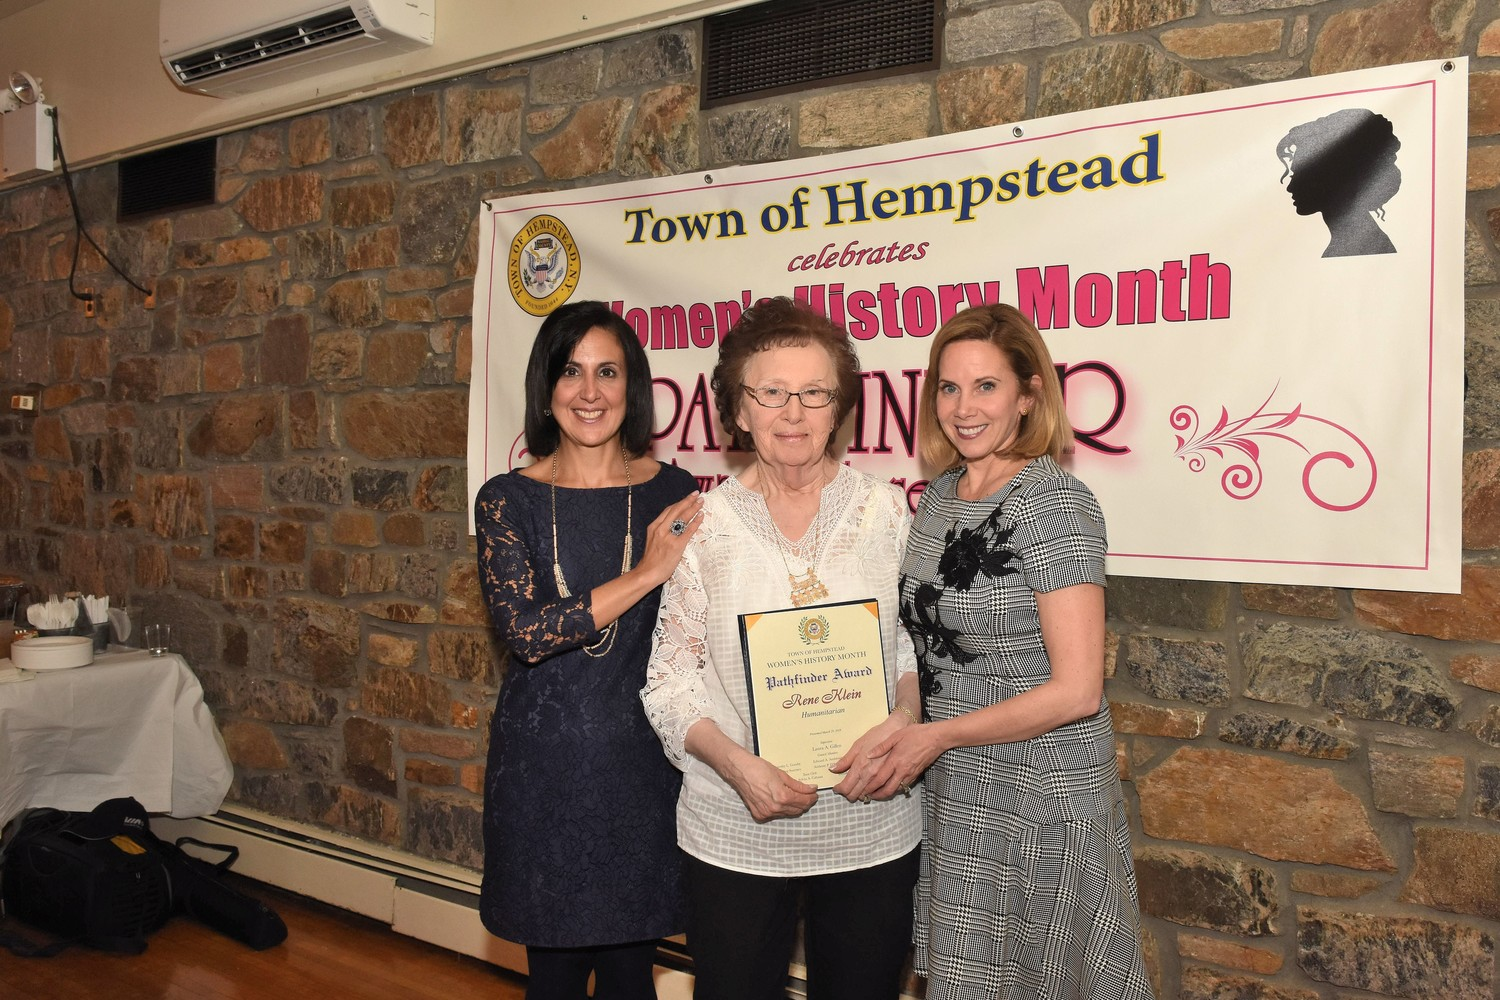 Renee Klein was presented with the Humanitarian Pathfinder Award for her volunteer work every Thursday for the visually impaired and for her charitable contributions to more than 40 organizations.